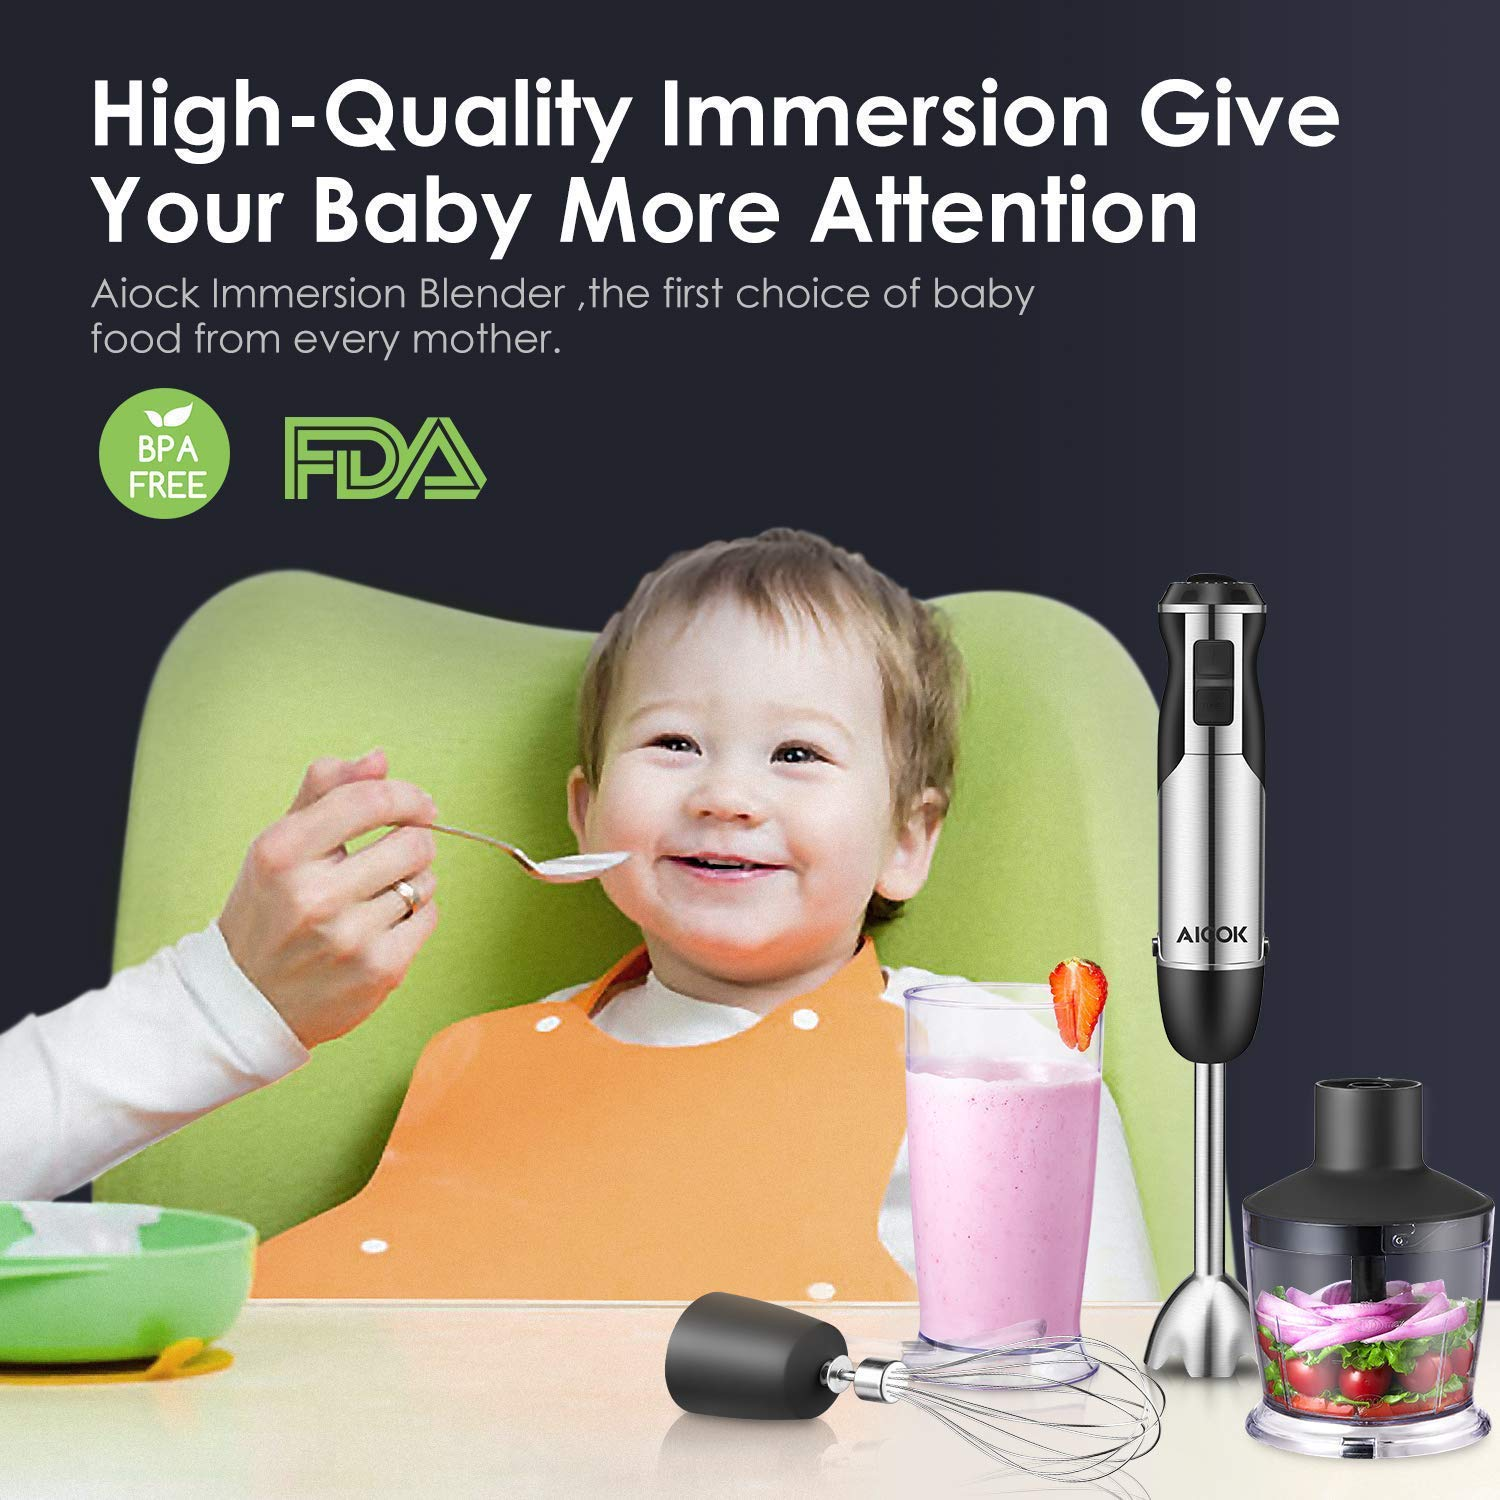 for Smoothies 600ml Stainless Steel Blades and BPA Free Containers Soups Baby Food Chopper 4 in 1 Stick Blender includes Beaker Egg Whisk Immersion Blender Aicok 12 Speeds Hand Blender